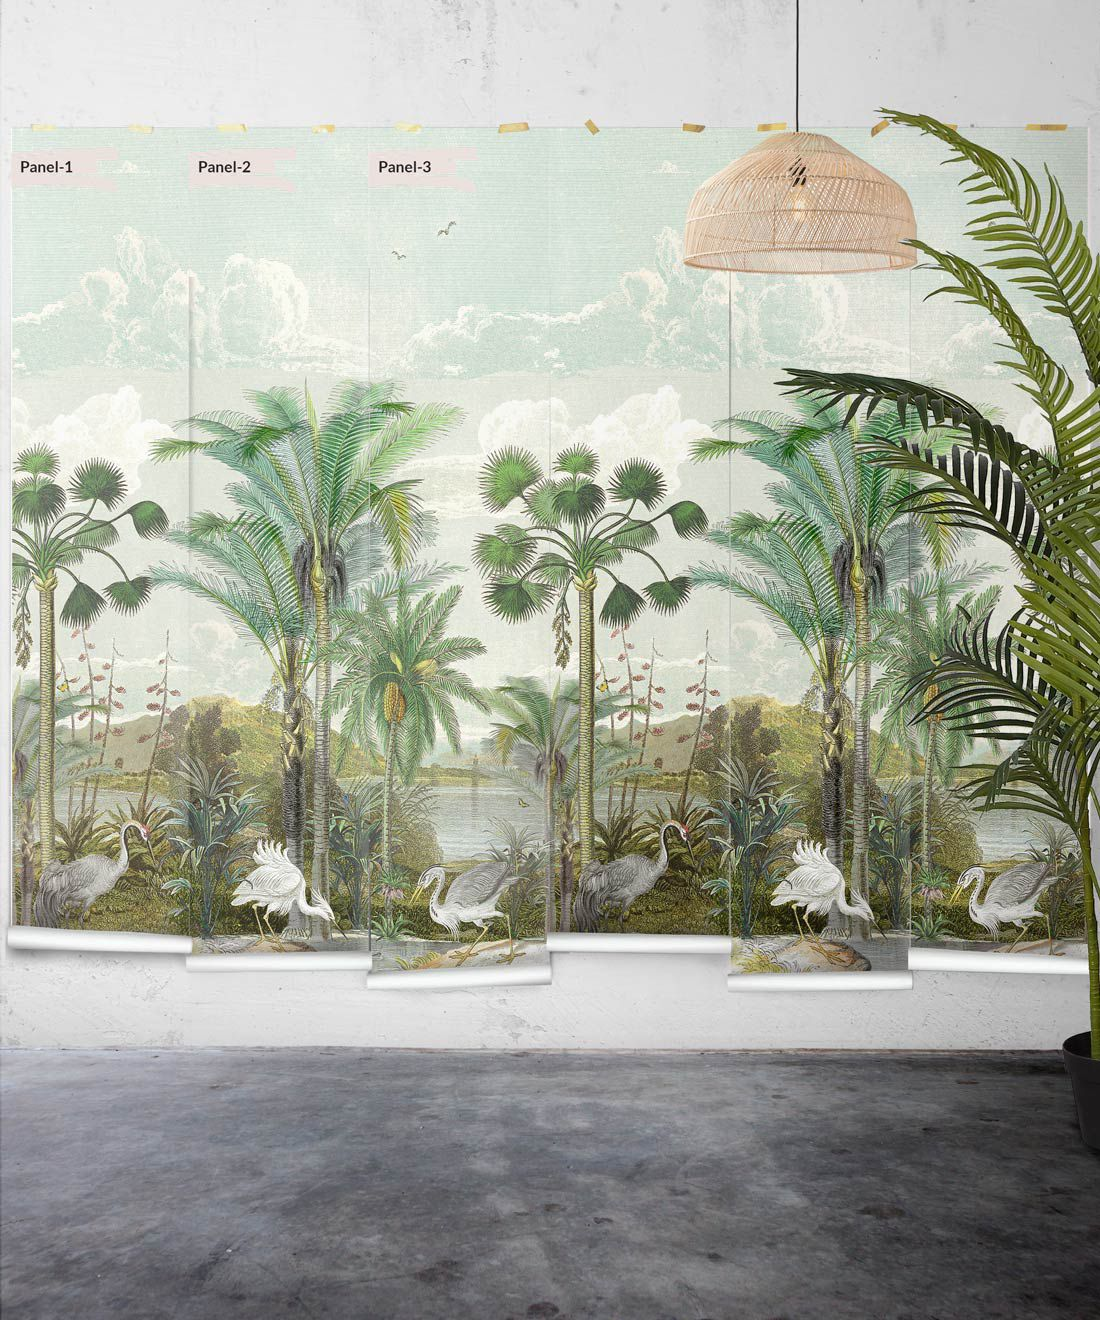 Indian Subcontinent Wallpaper Mural •Bethany Linz • Palm Tree Mural • Blue • Panels